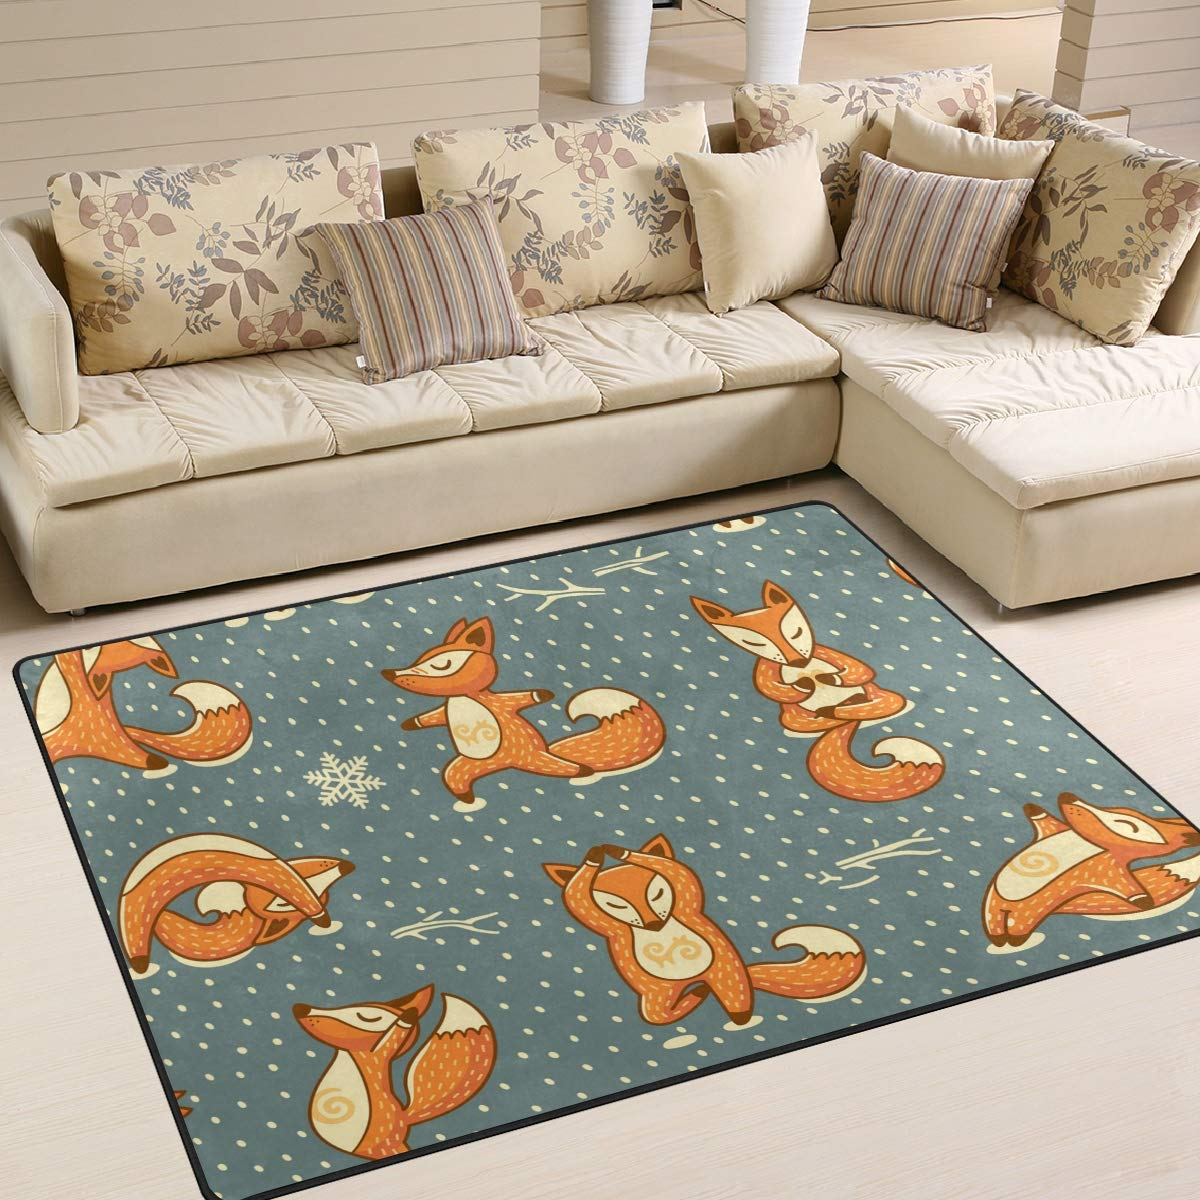 ALAZA Christmas Funny Yoga Fox Kids Area Rug, Non-Slip Floor Mat Soft Resting Area Doormats for Living Dining Bedroom 5' x 7'